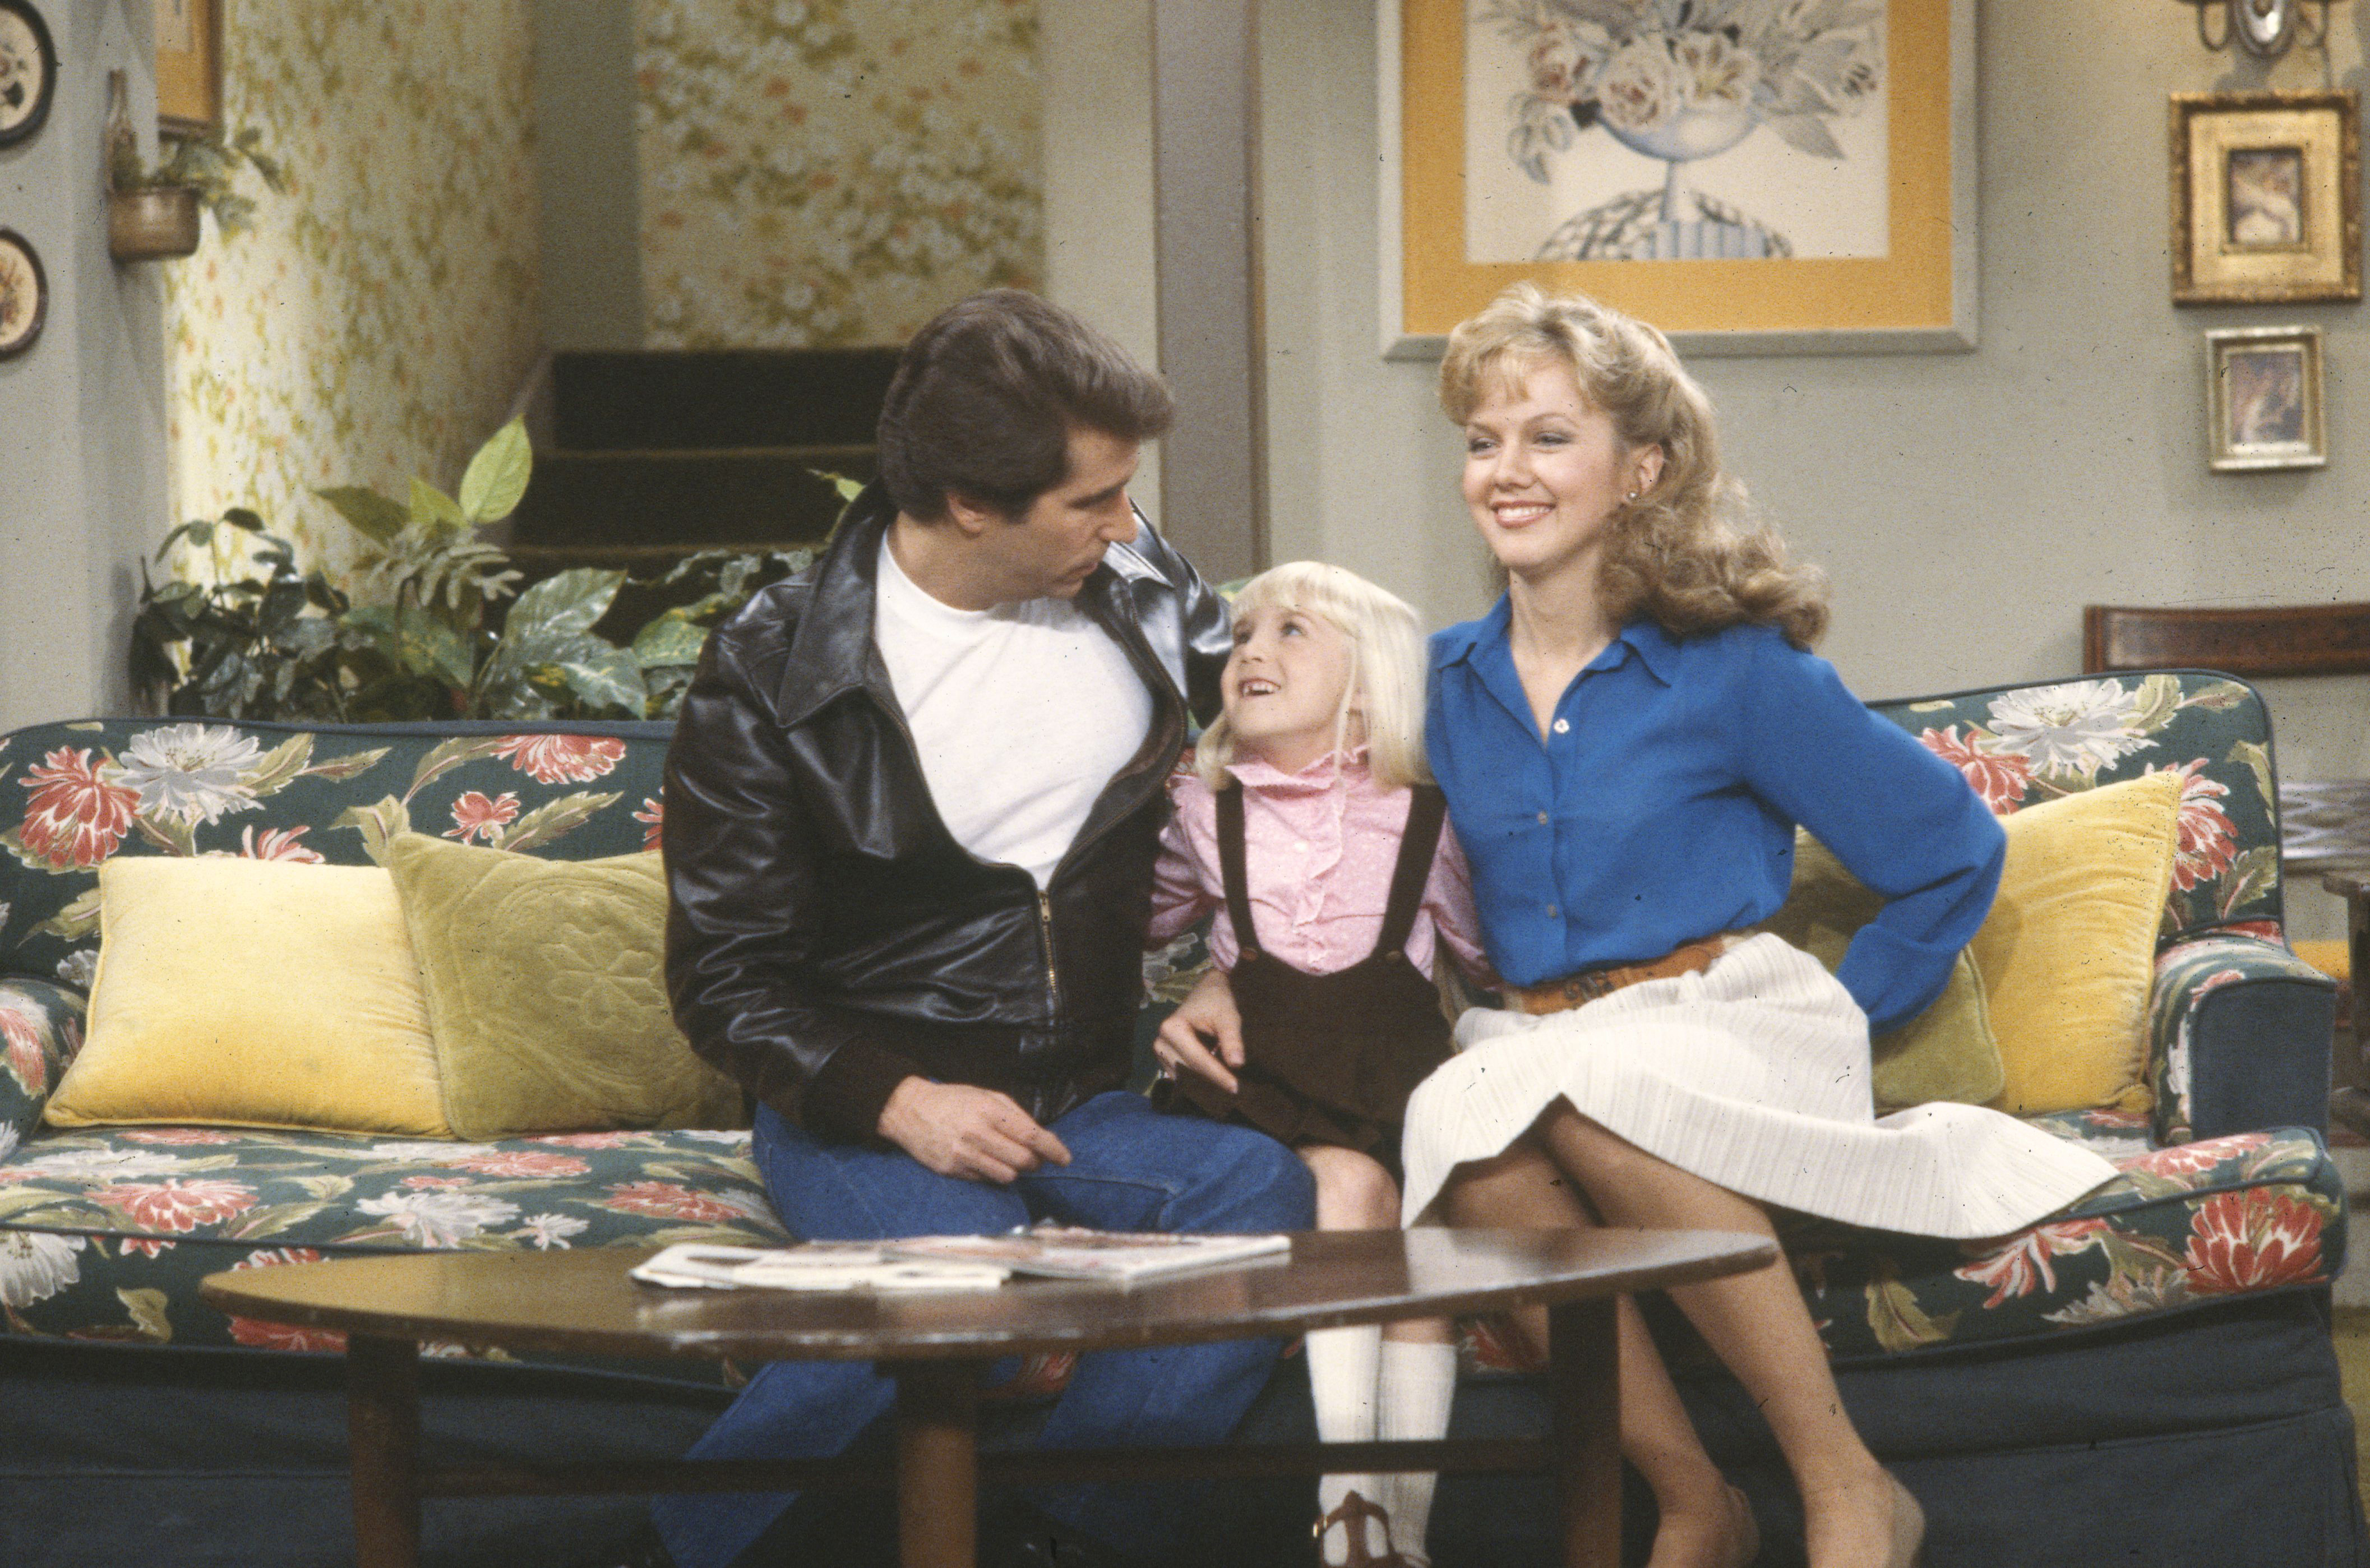 'Happy Days' stars Henry Winkler, Heather O'Rourke, Linda Purl (Photo by Walt Disney Television via Getty Images Photo Archives/Walt Disney Television via Getty Images)